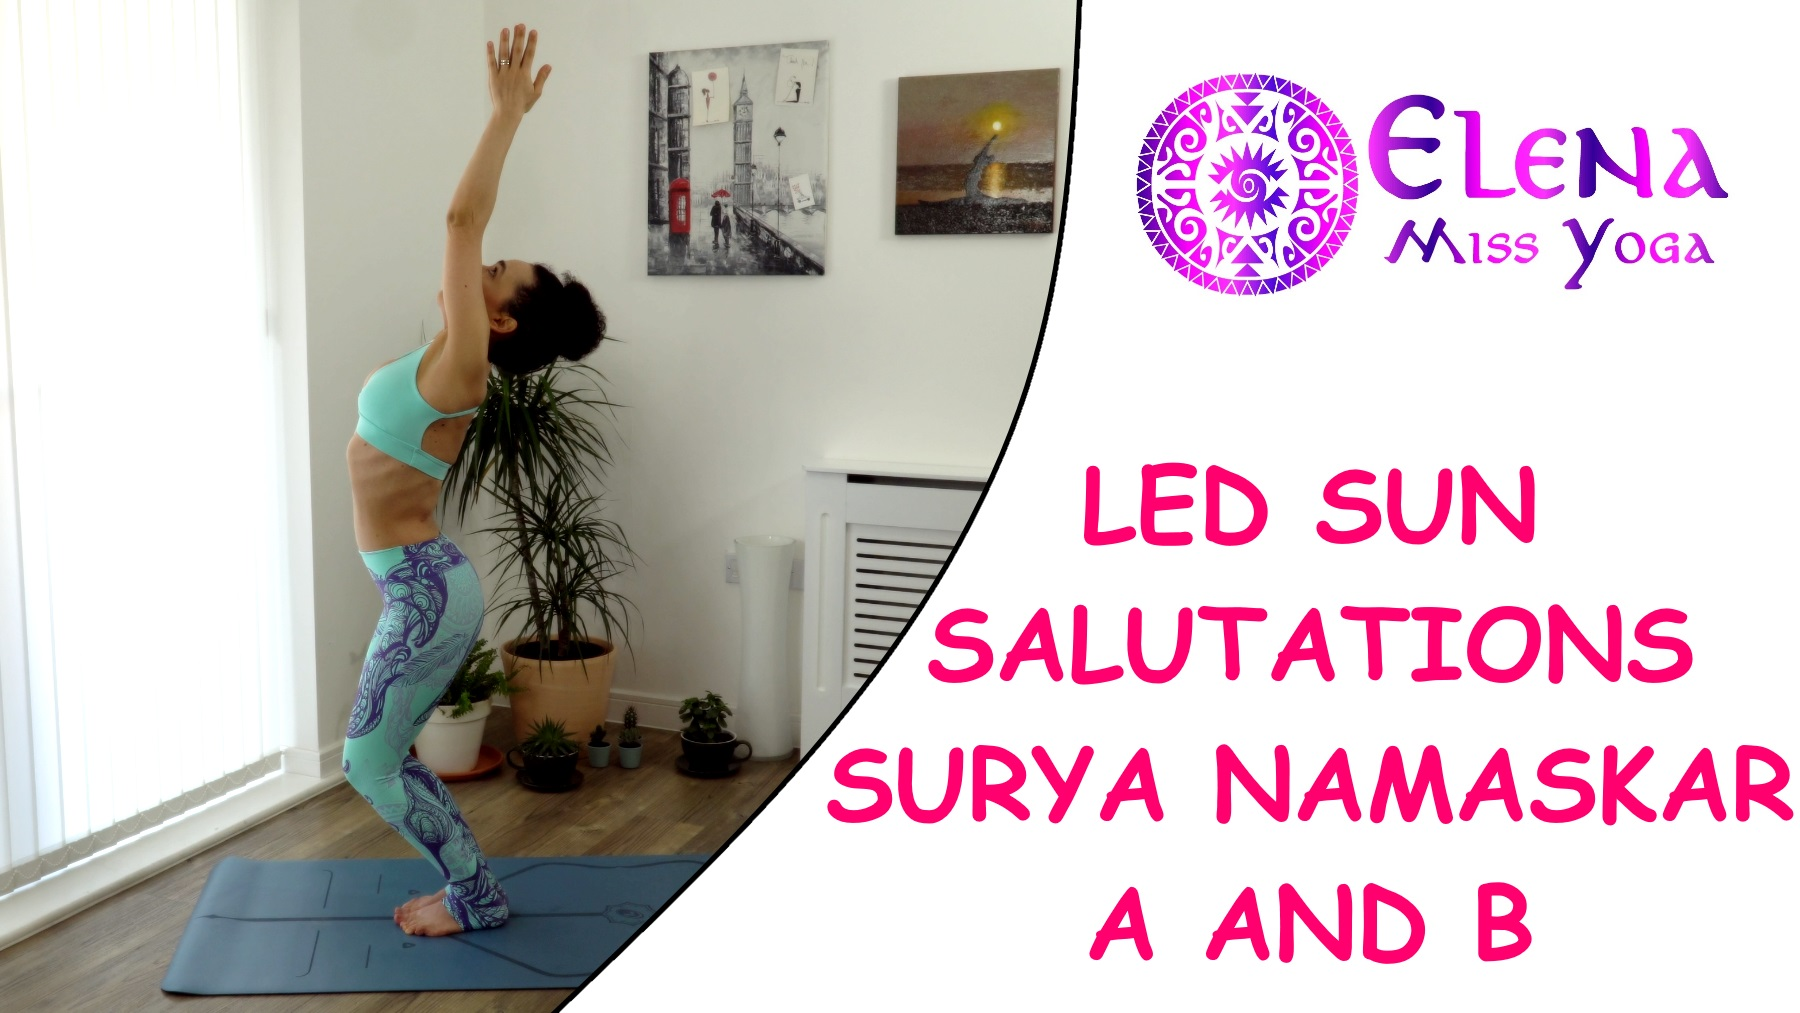 LED ASHTANGA SUN SALUTATIONS - SURYA NAMASKAR A AND B